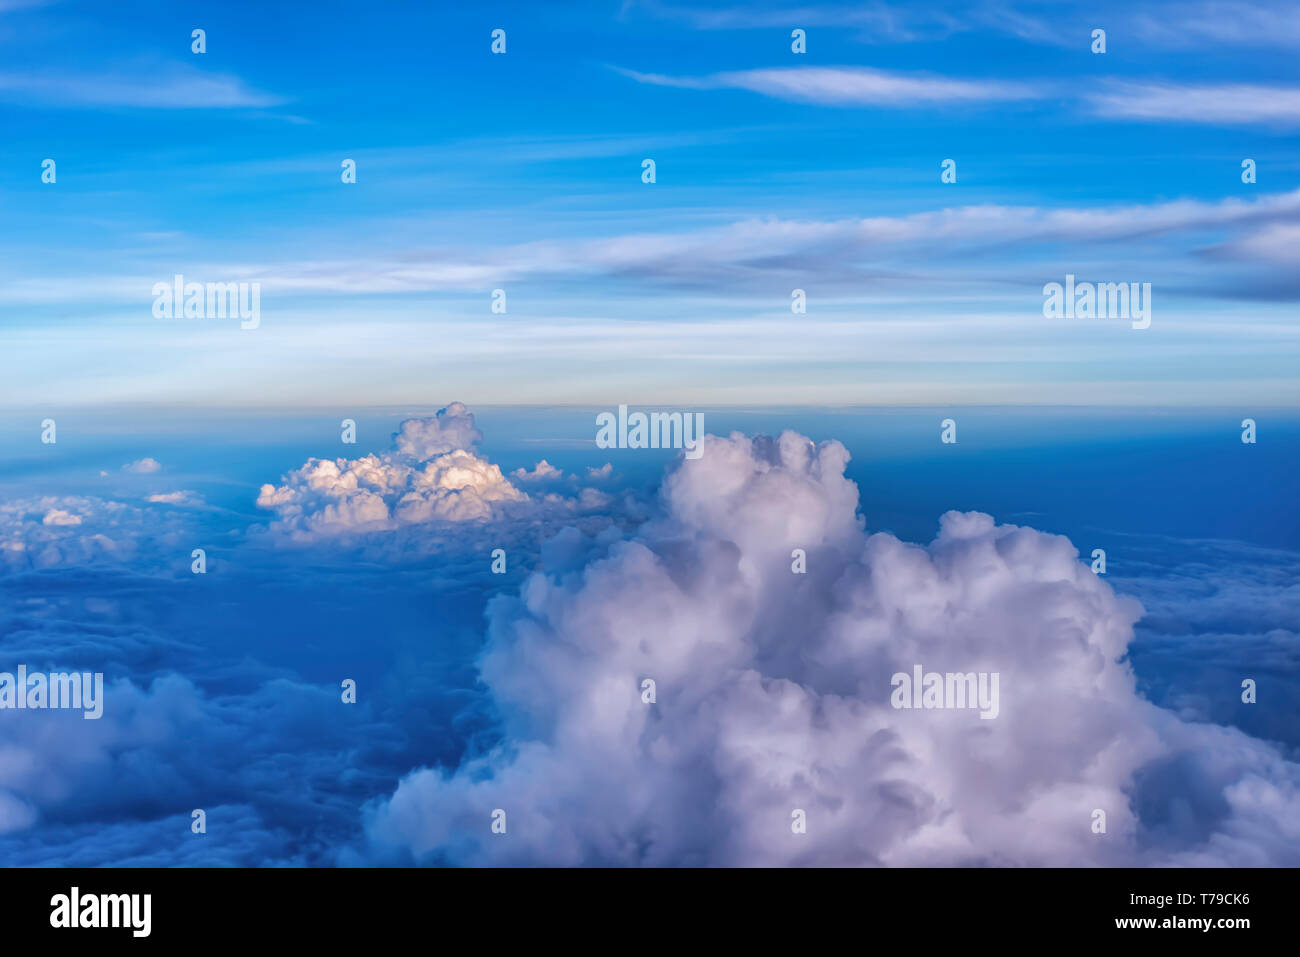 Aerial view of billowy monsoon/storm clouds hanging over the plains of India. Rain bearing clouds--Cumulonimbus and Cumulus are visible. - Stock Image